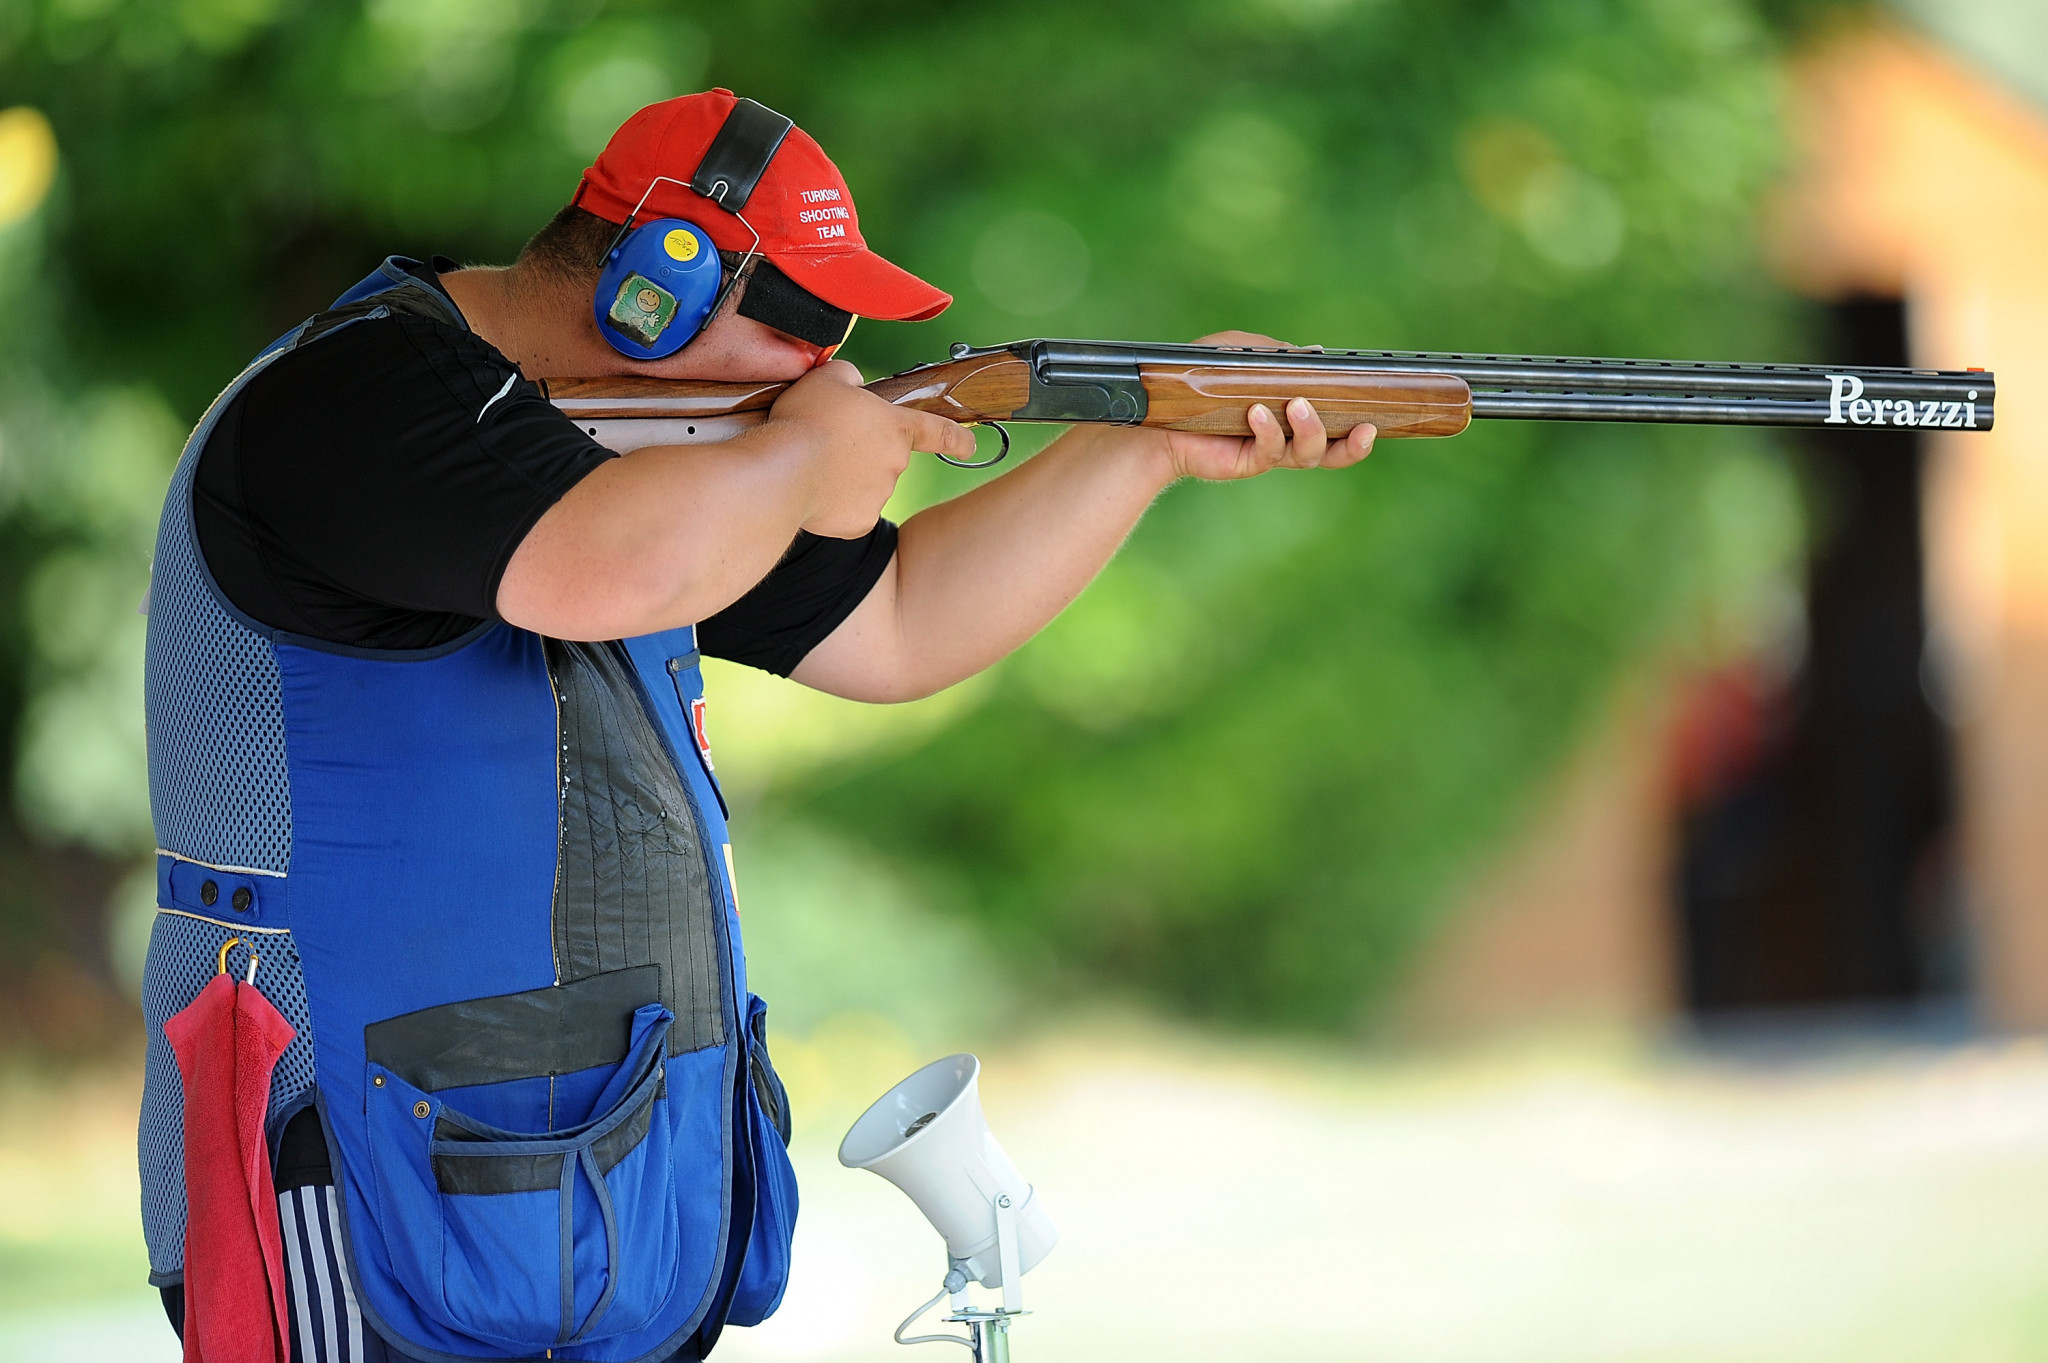 Turkey's Yavuz Ilnam has taken the lead in men's trap qualification ©Getty Images